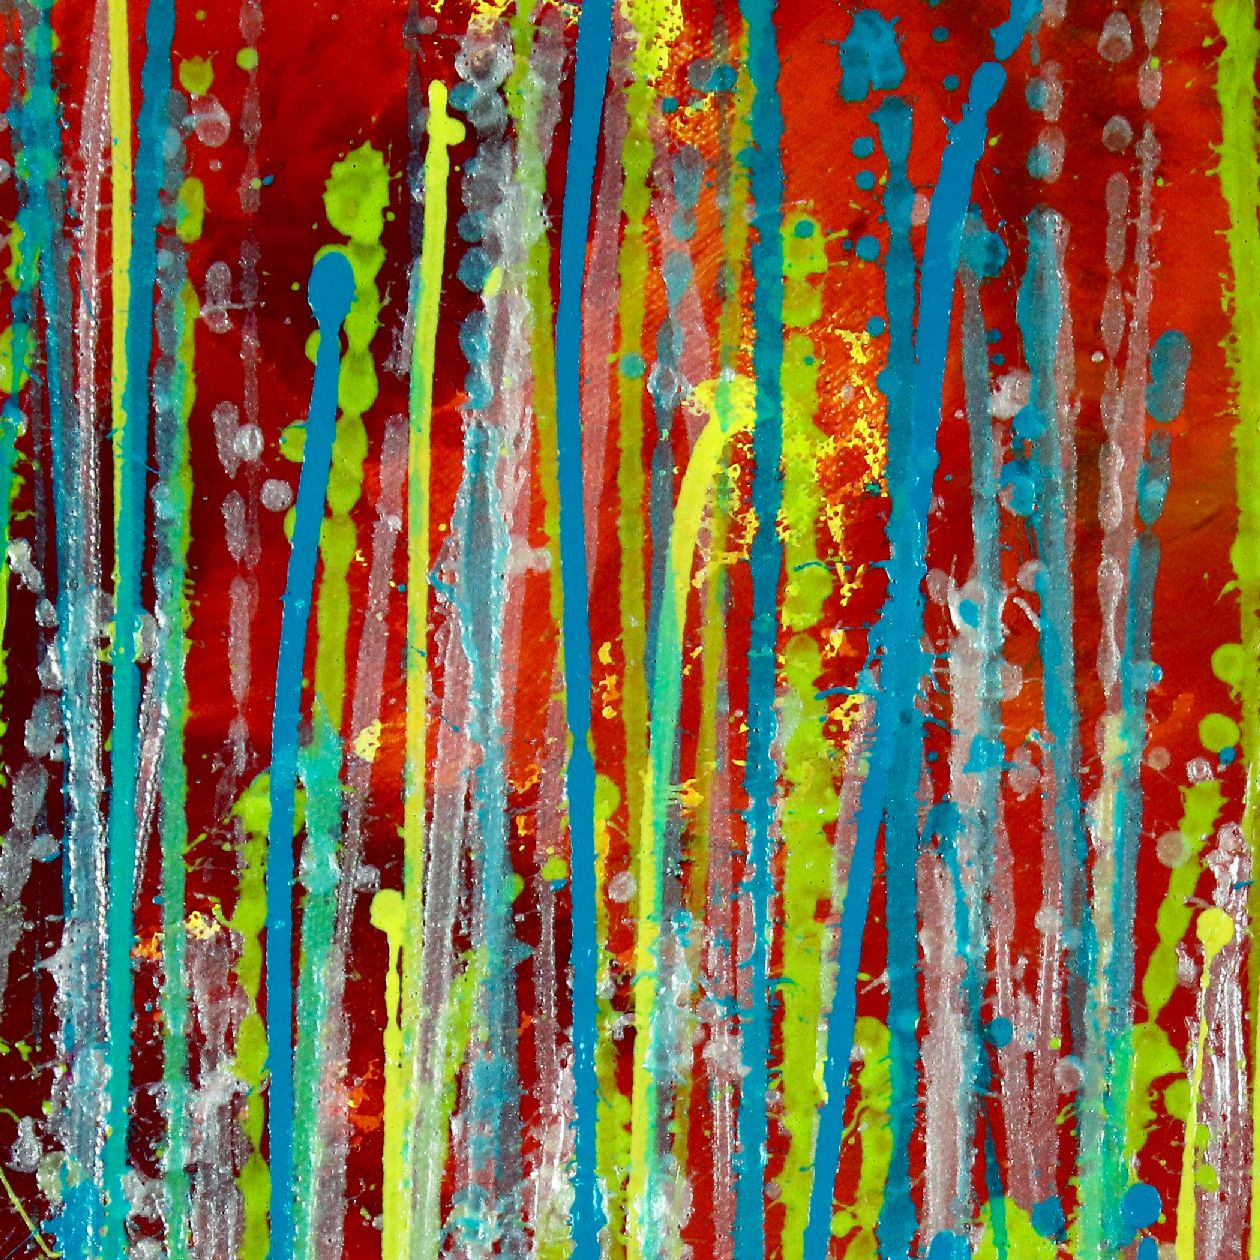 Detail - Daring natural synergy | Energetic abstract painting by Nestor Toro (2020)